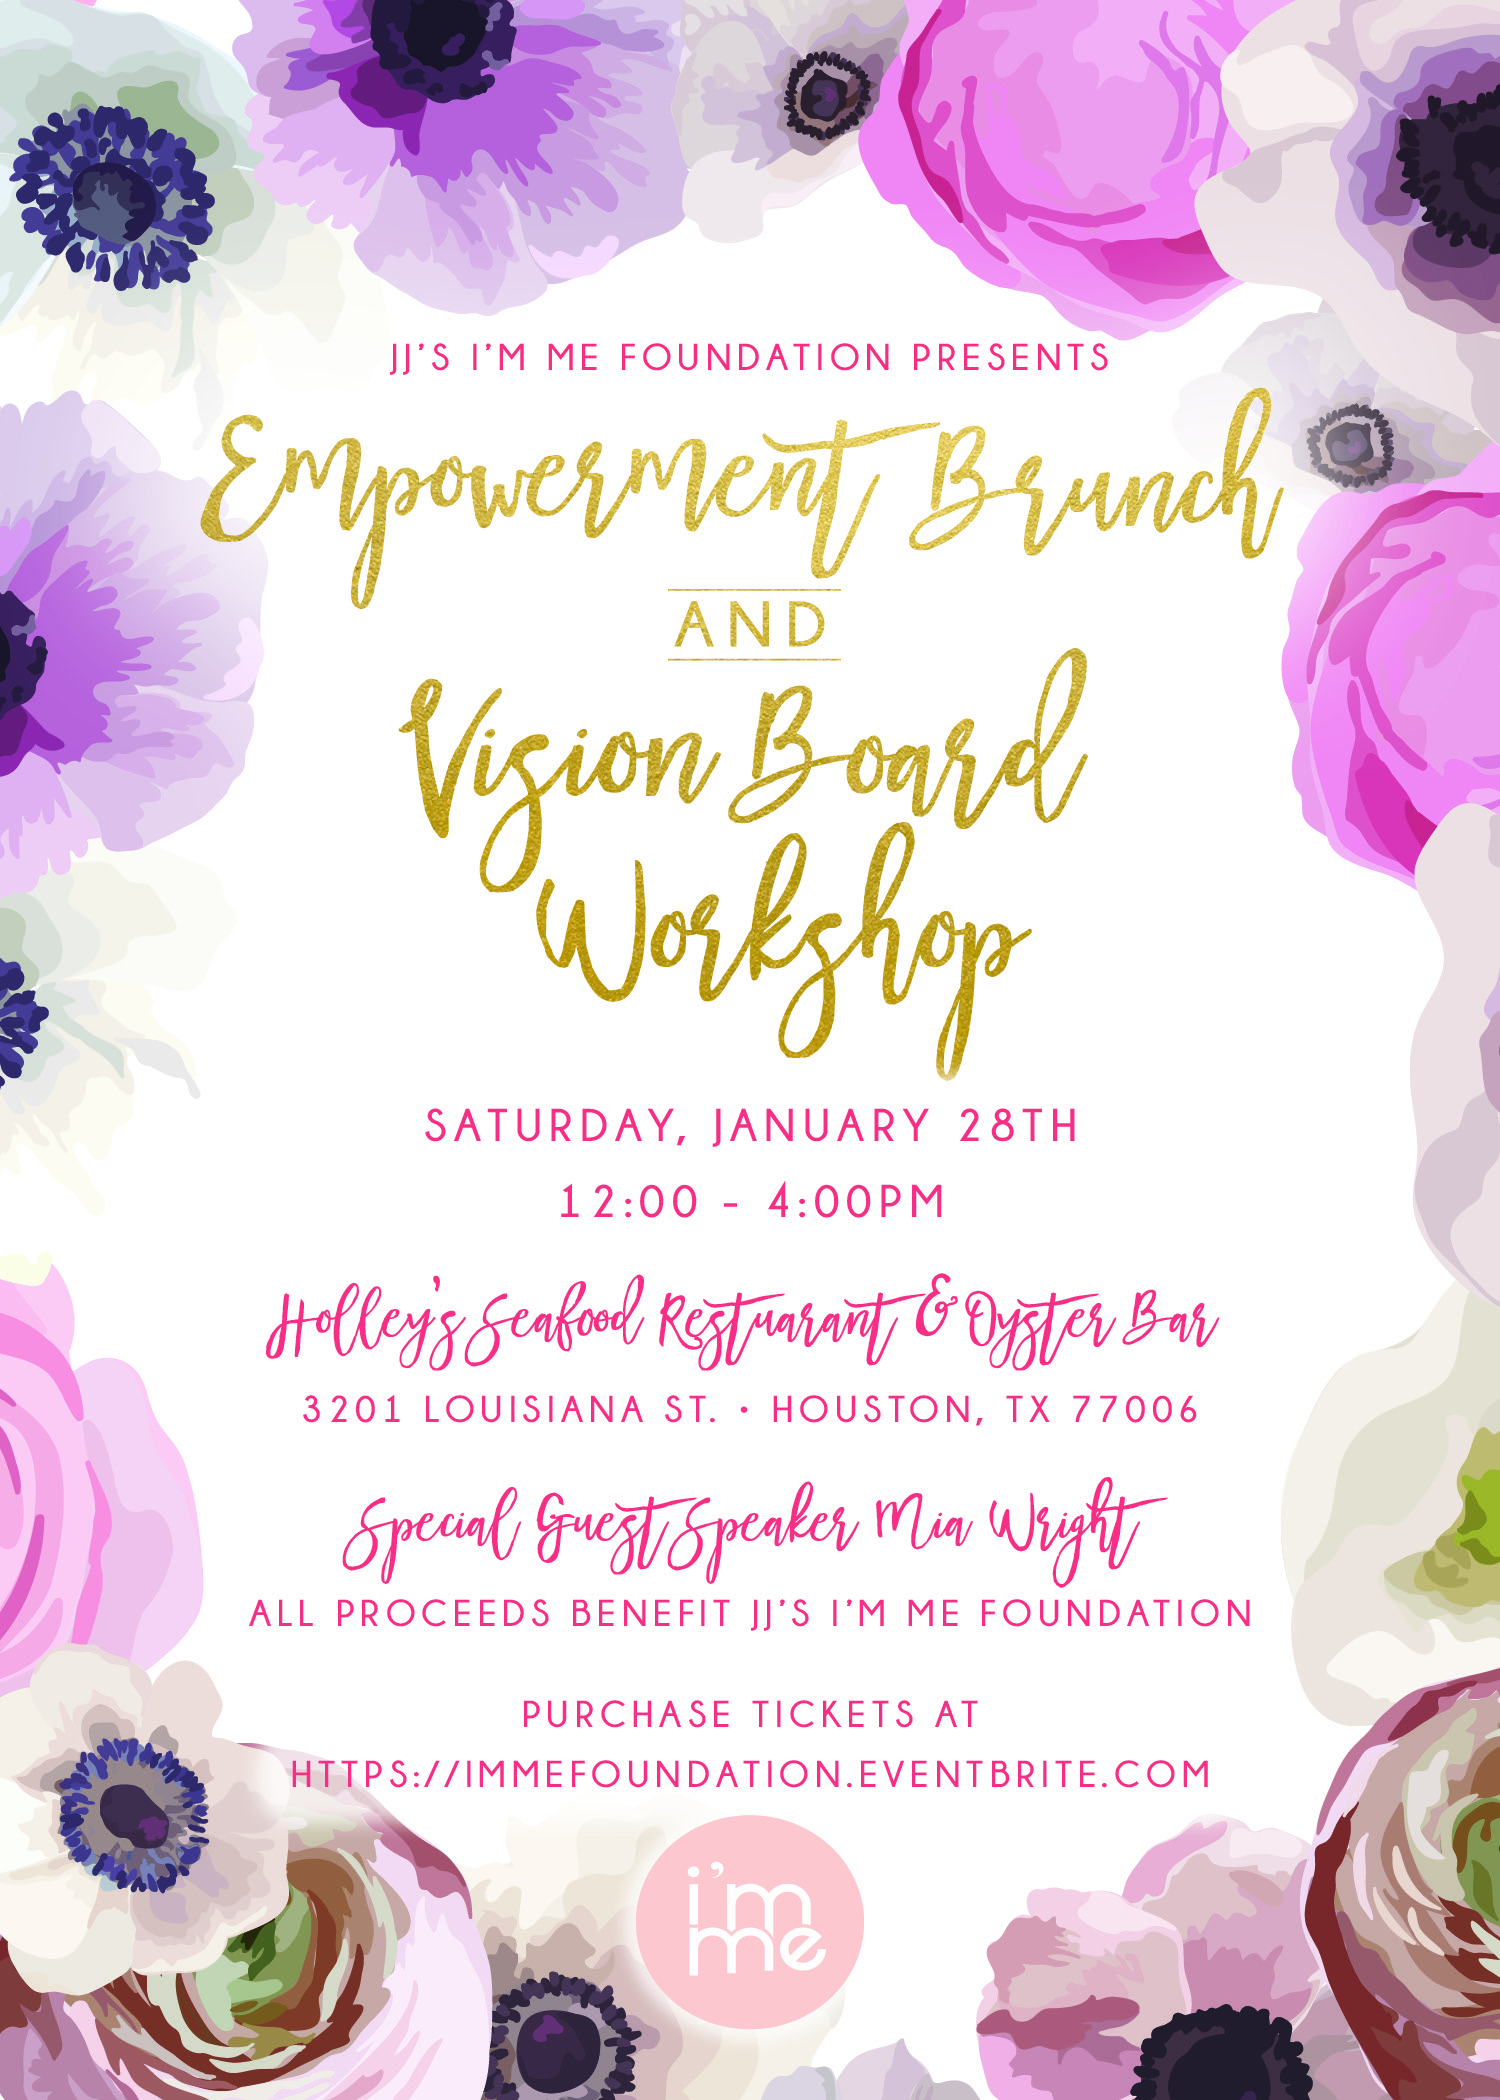 January 28th  - Empowerment Brunch & Vision Board Workshop